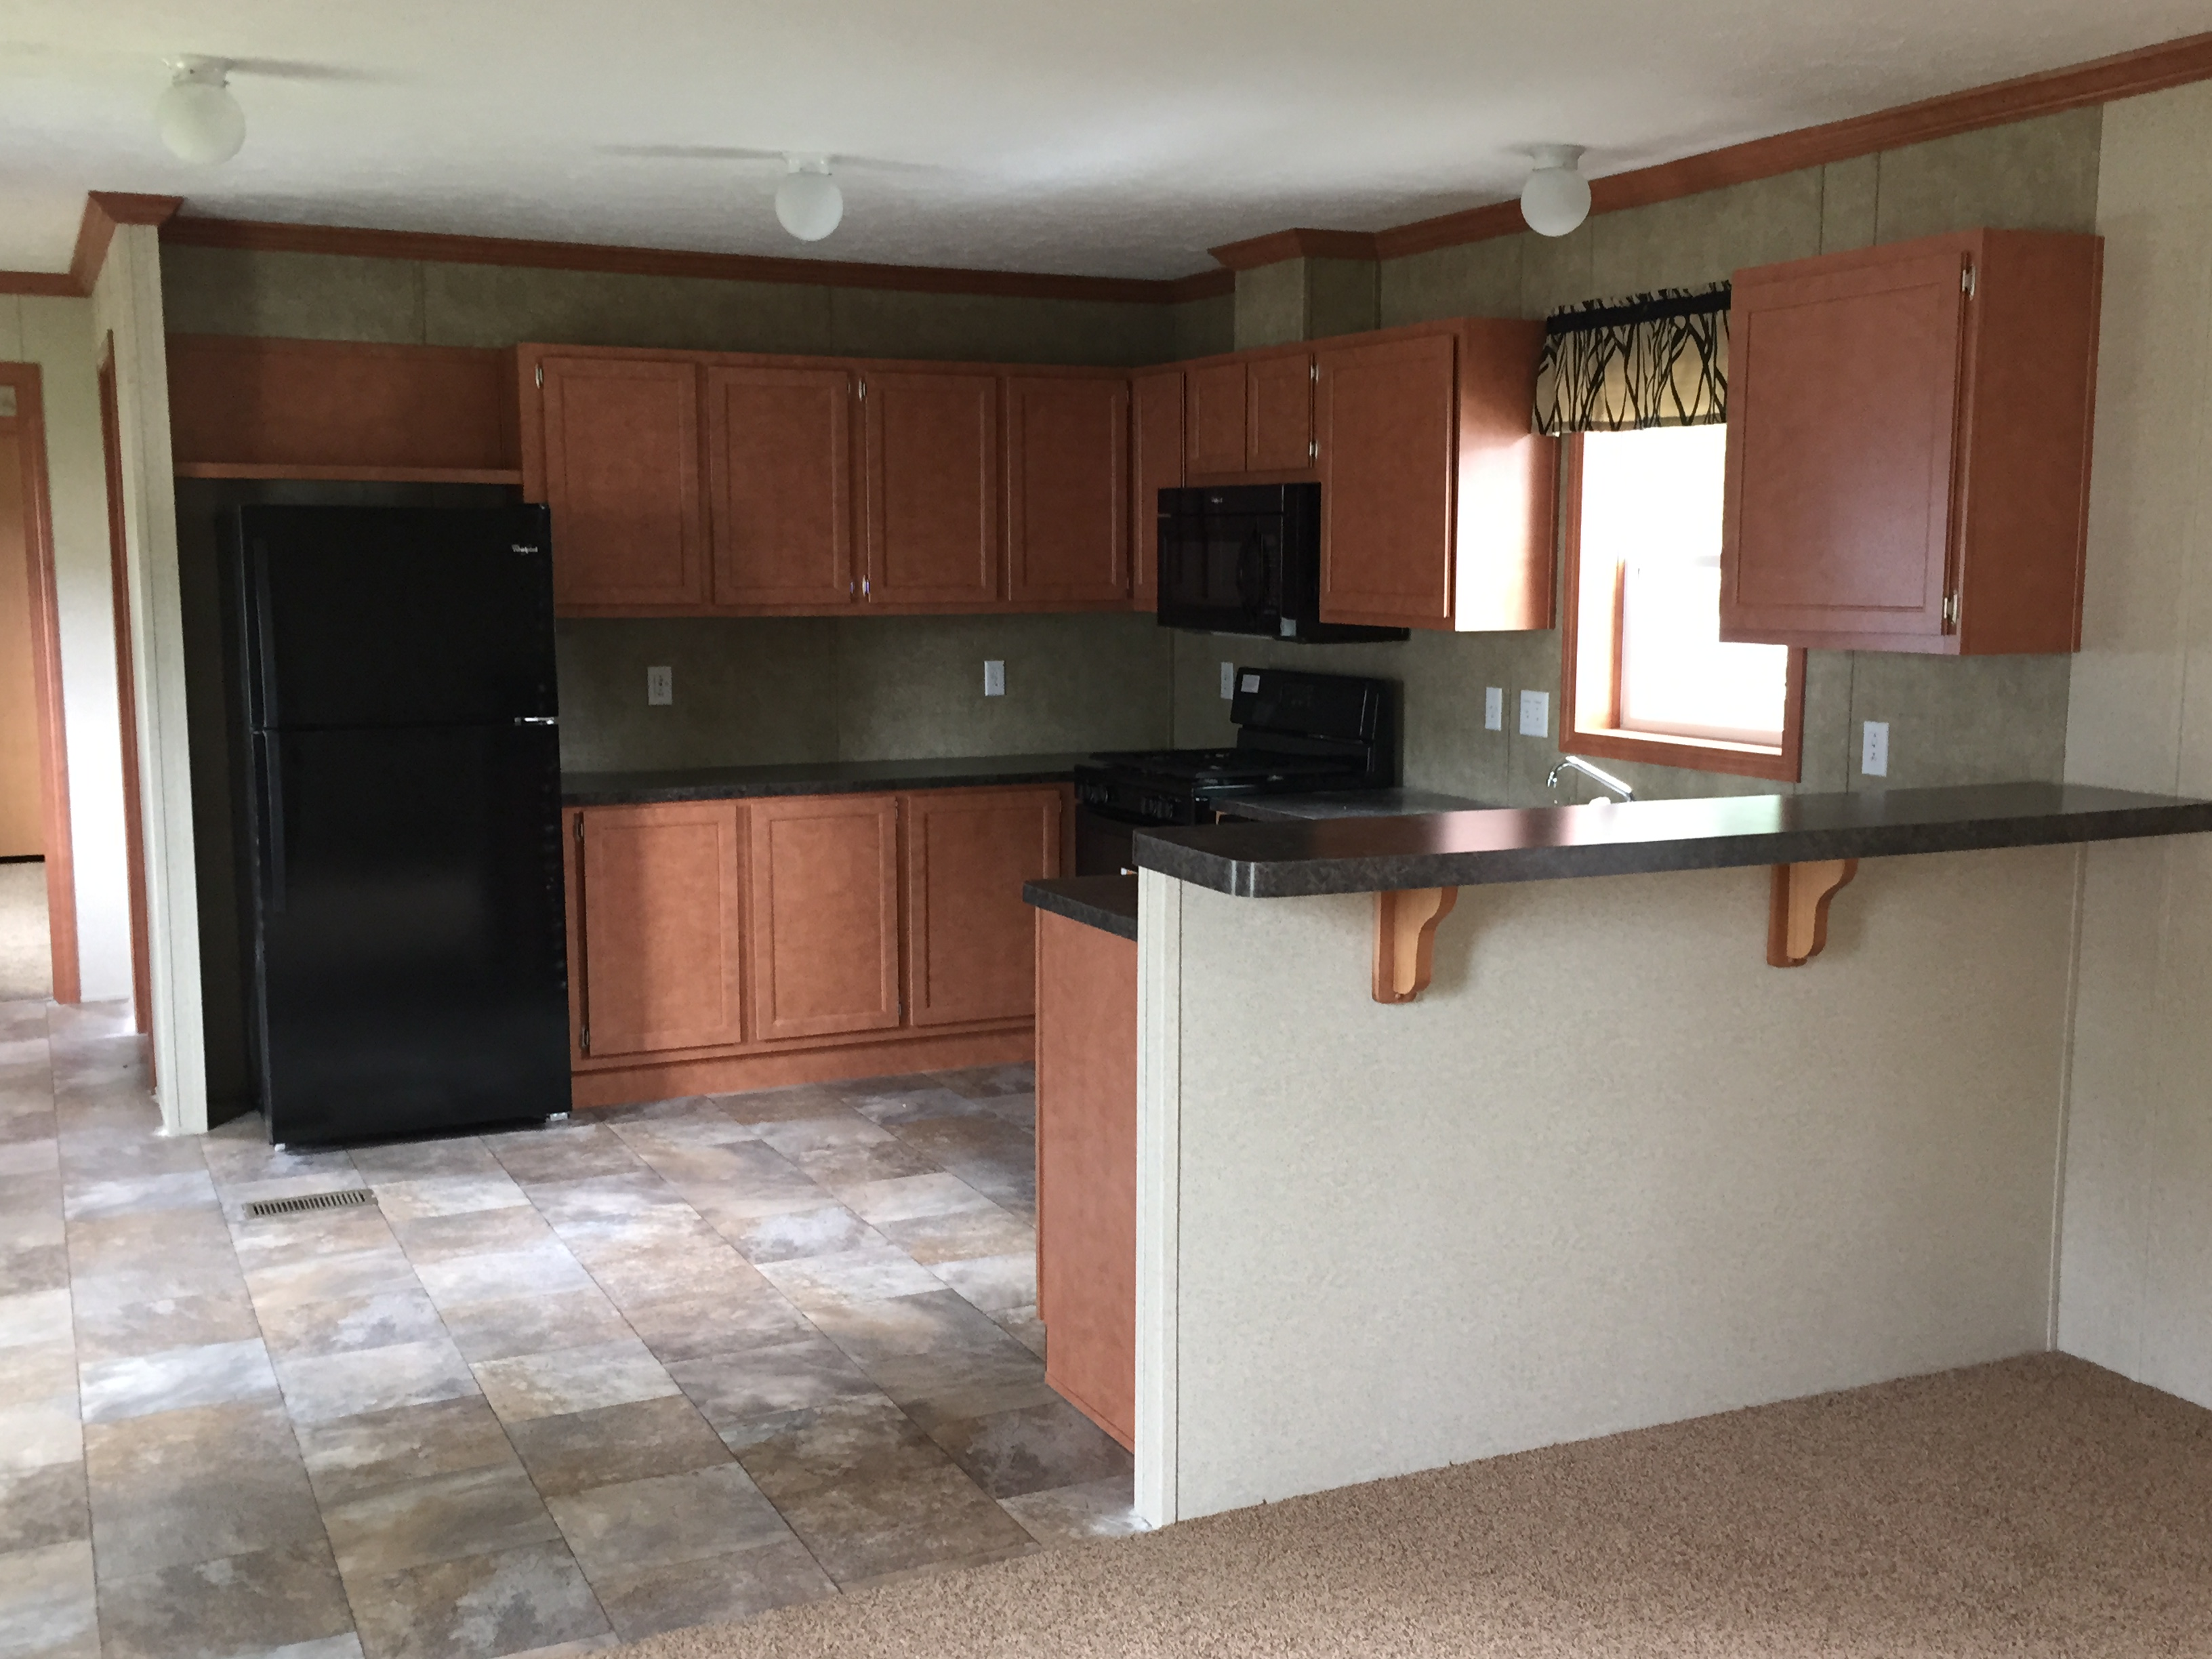 singlewide mobile home kitchen